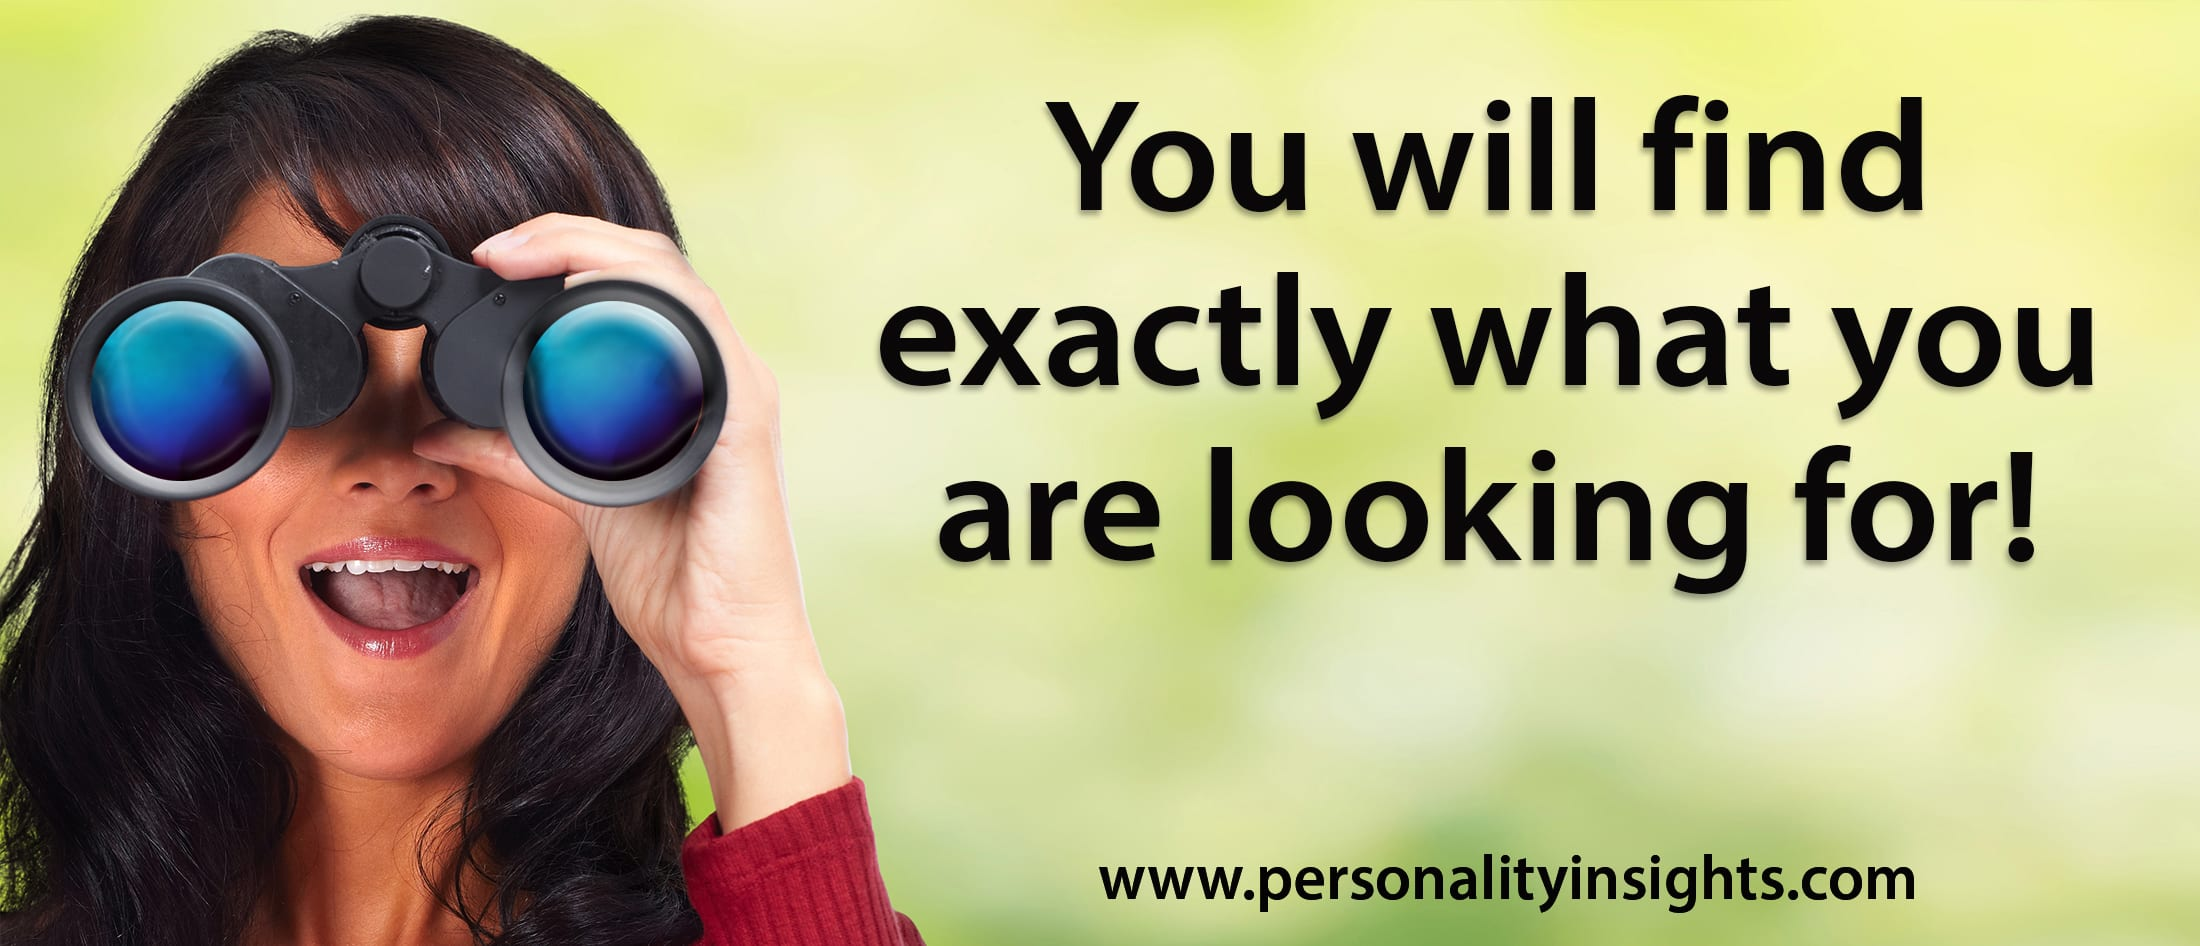 Tip: You will find exactly what you are looking for!